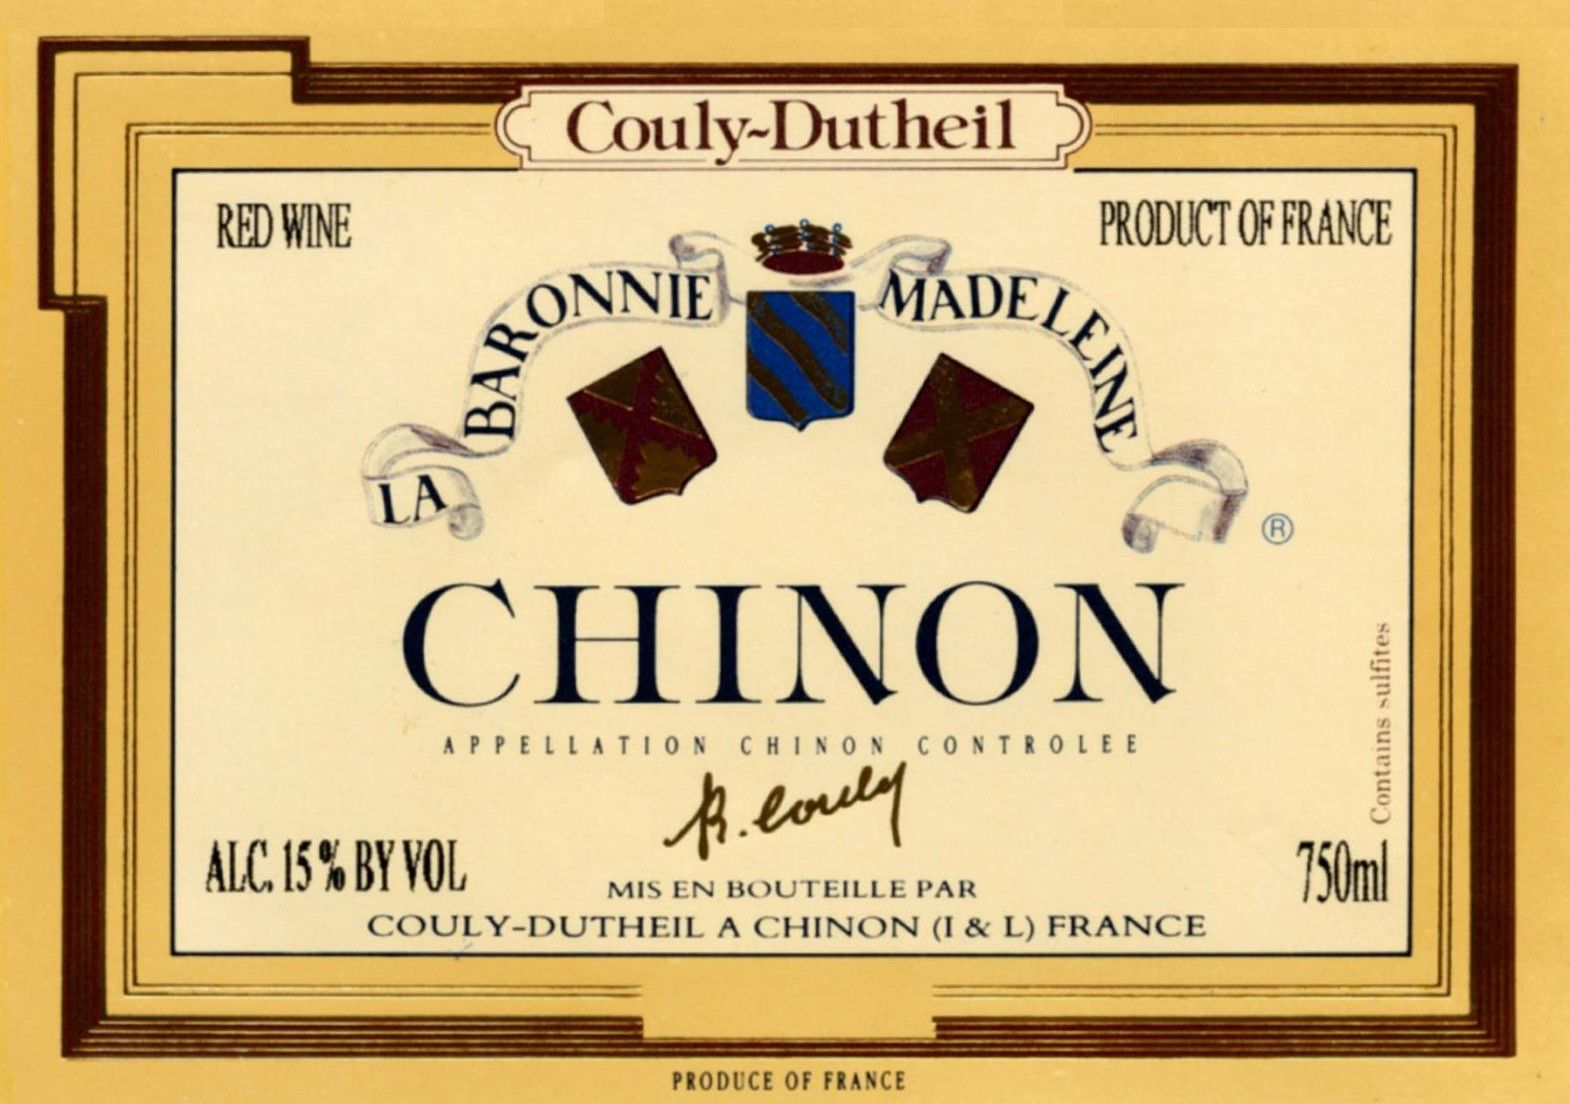 Couly-Dutheil Chinon Barronie Madeleine 2007 Front Label